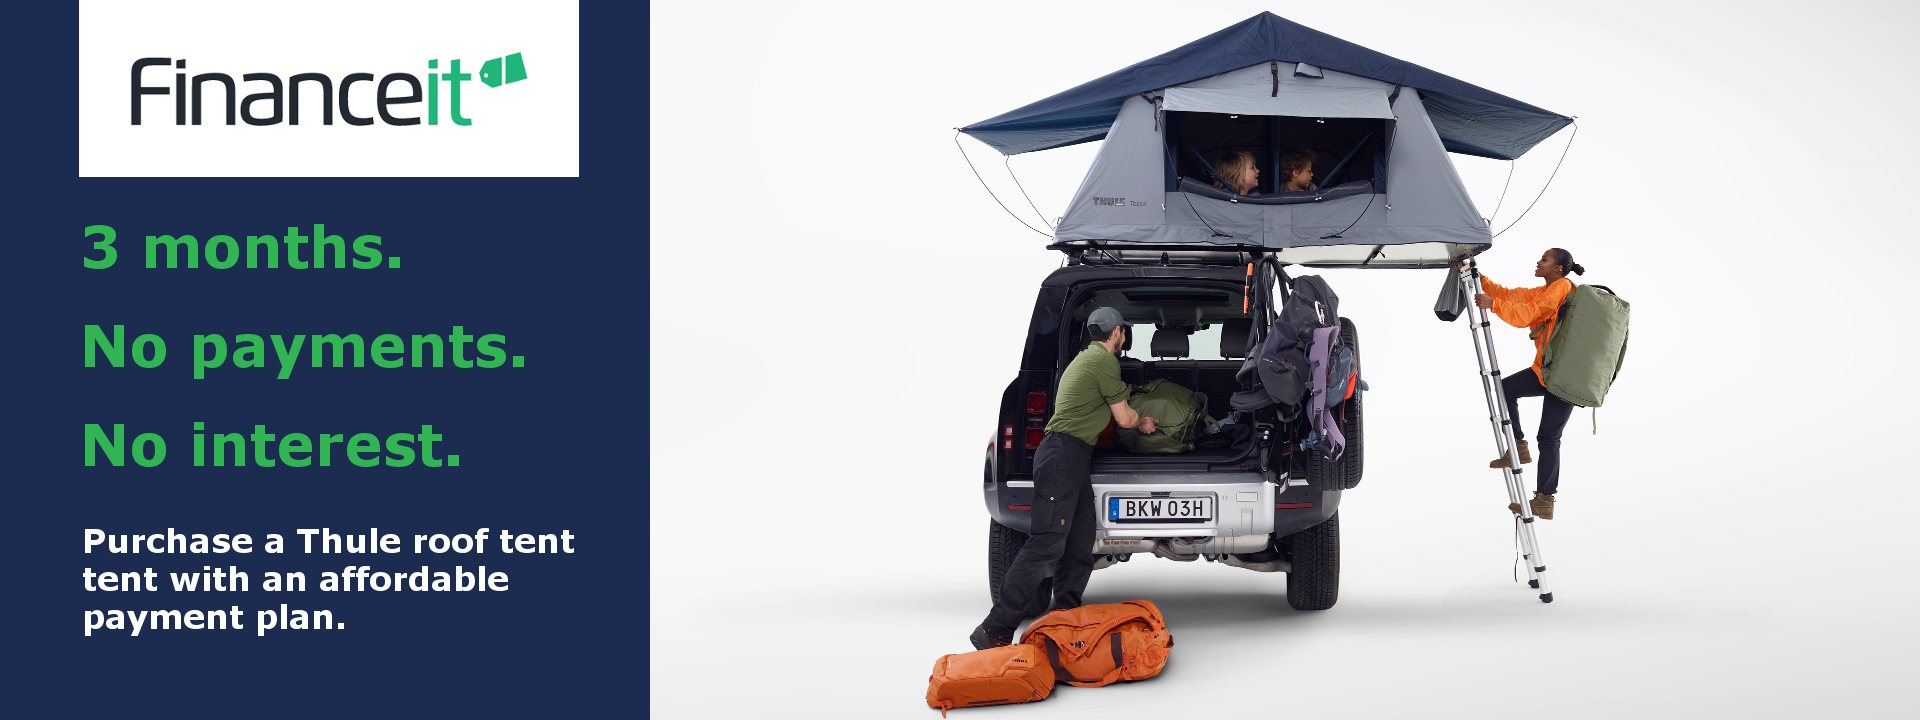 Buy a Tepui Tent by August 7th and Don't Pay for 3 Months!